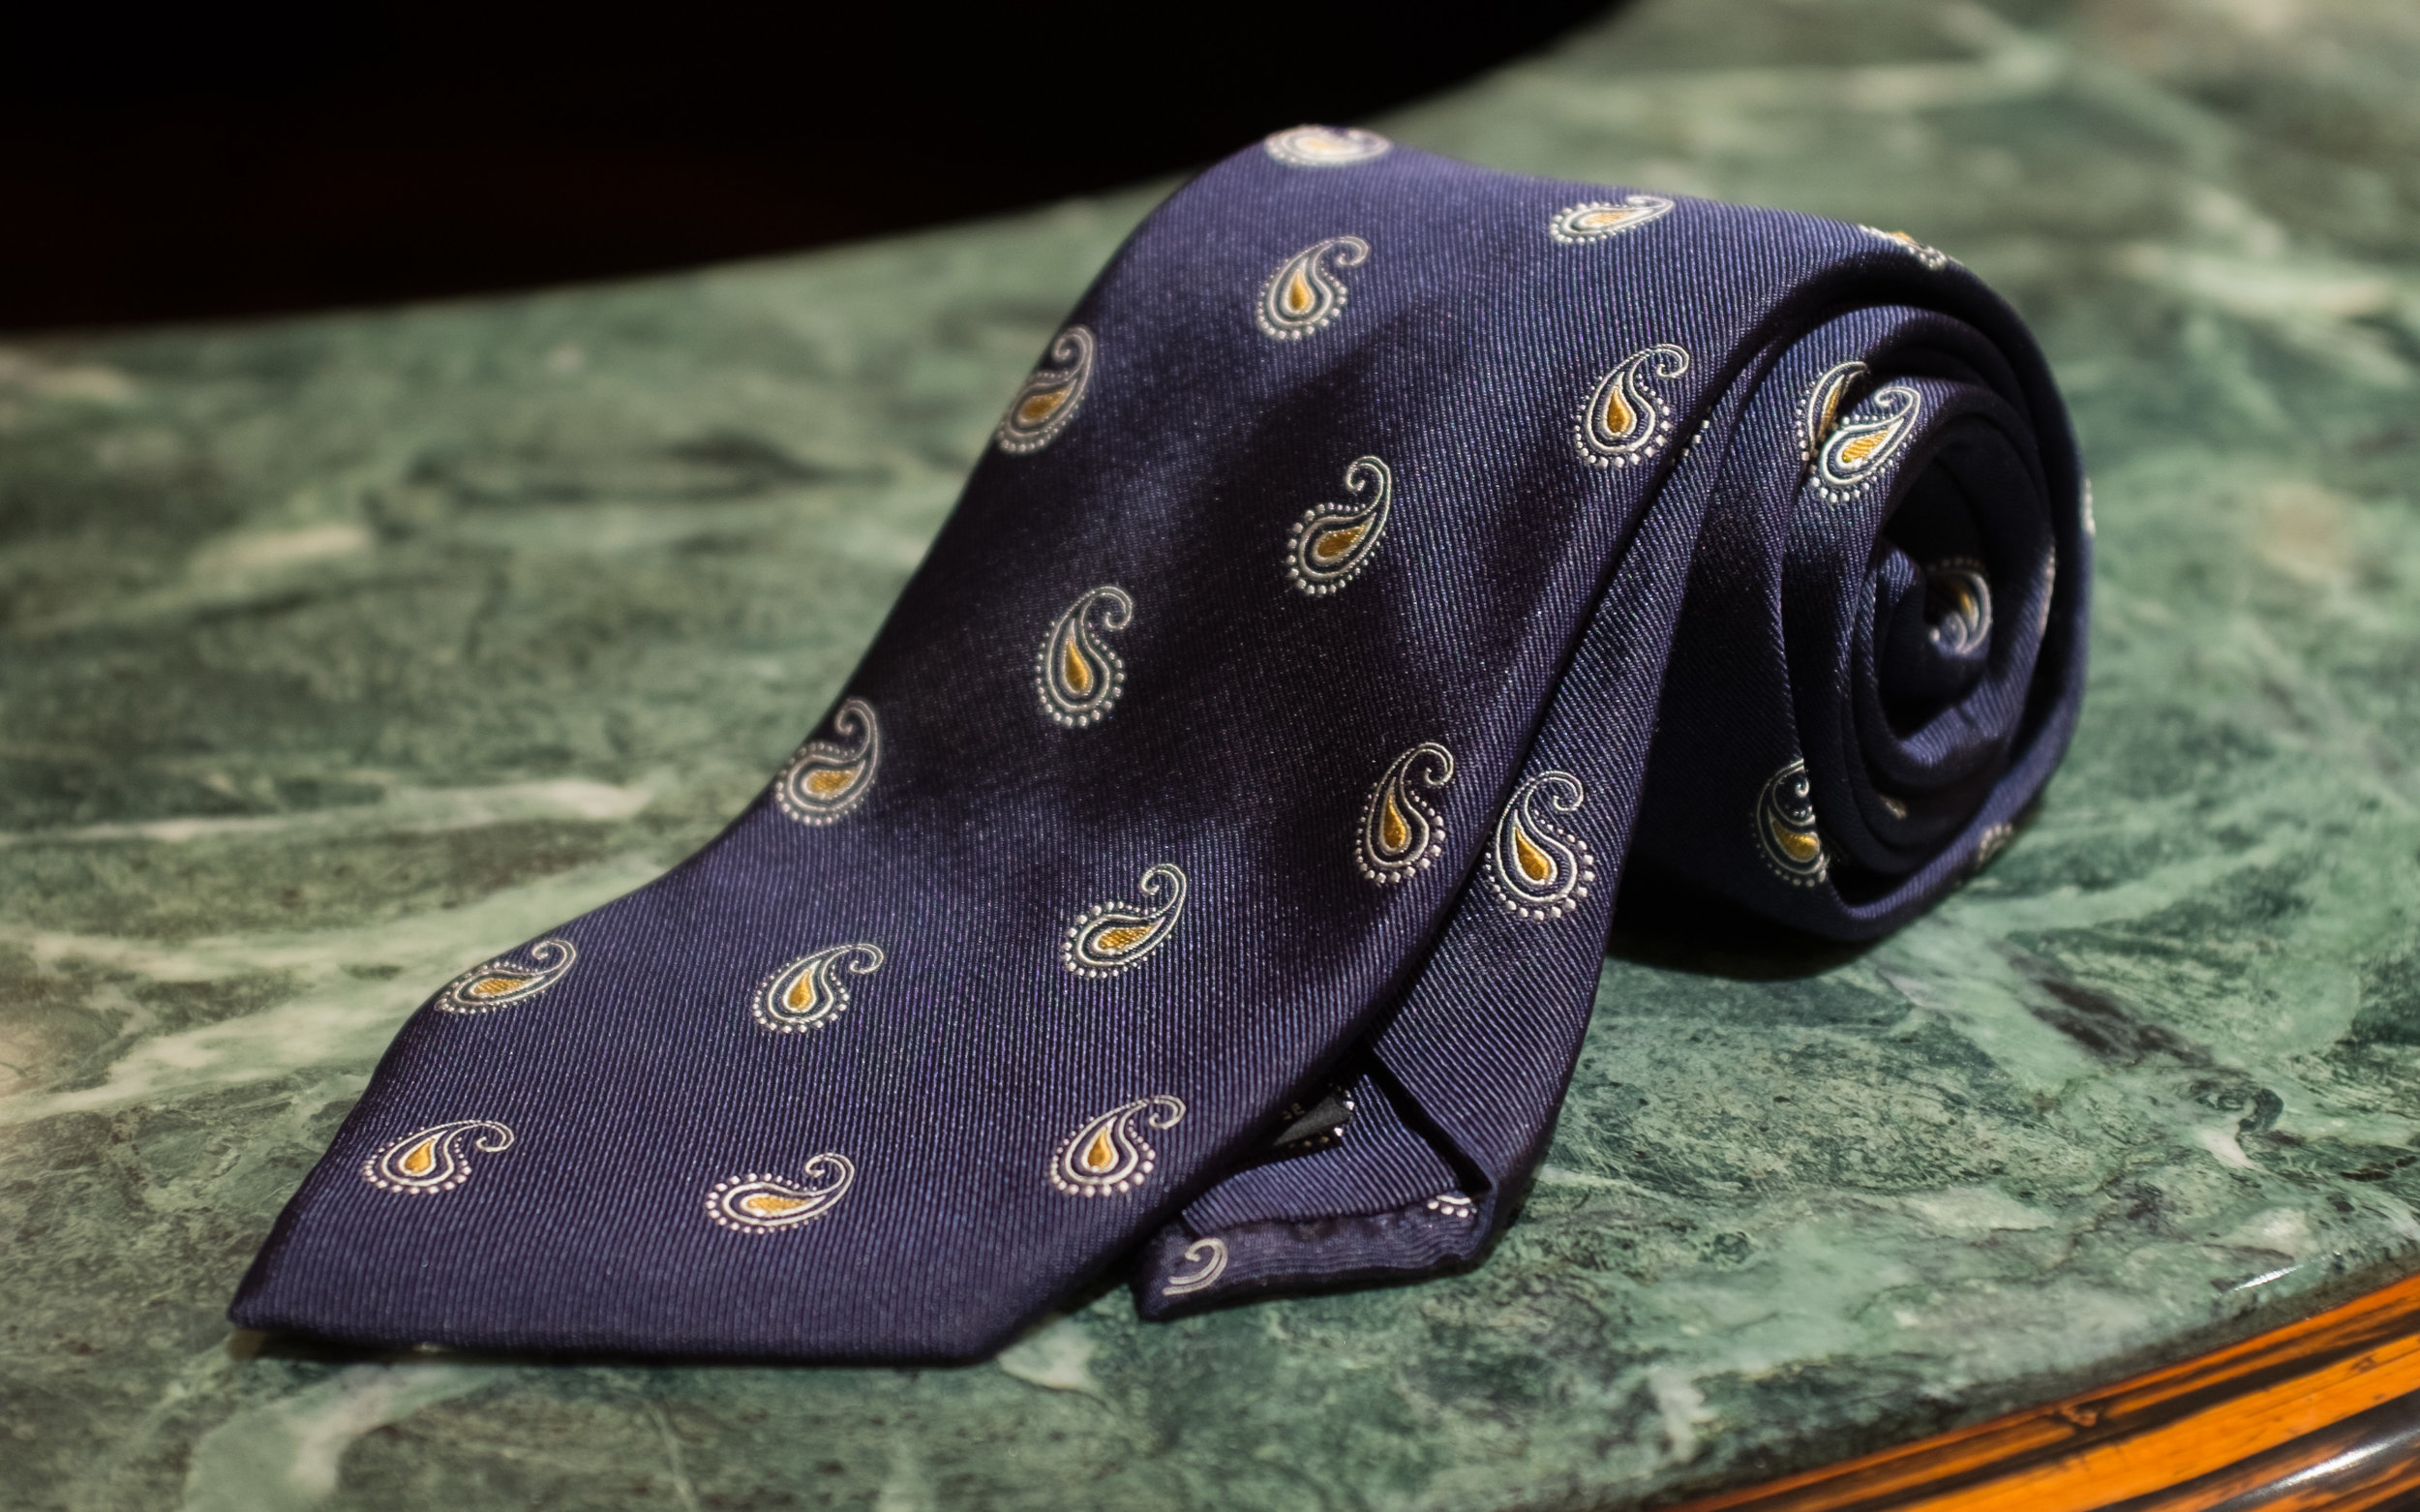 Woven Silk Spaced Paisley  - The modestly sized yet prominent paisley motif on a navy field gives this tie an almost crested effect, appropriate with either a suit or blazer.